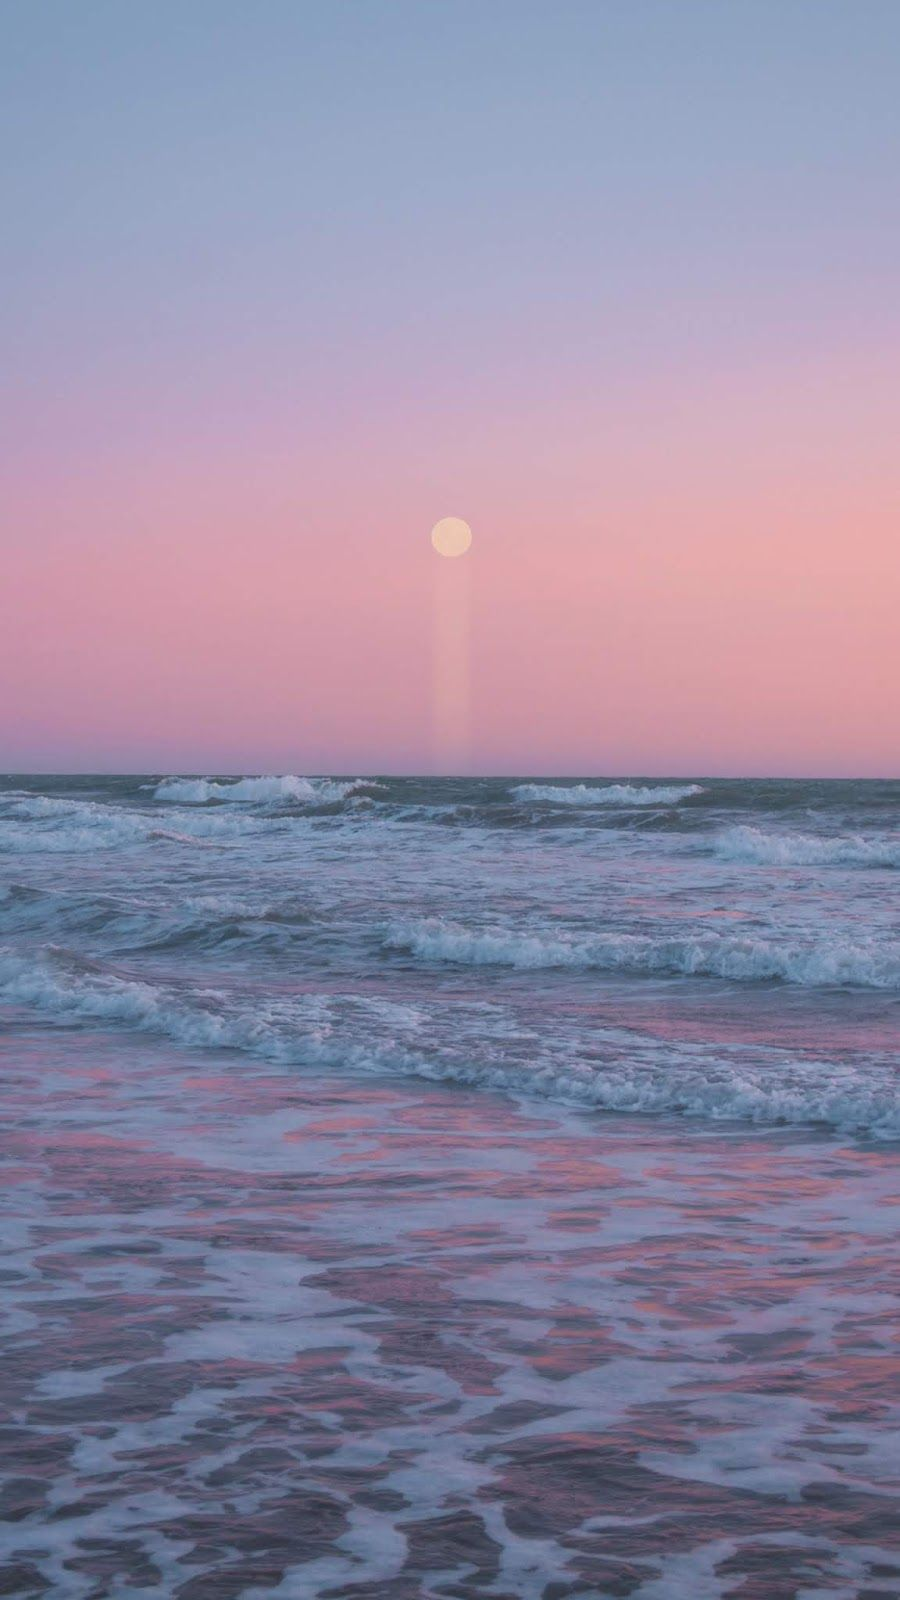 Moon In The Pink Sky On The Beach In 2020 Iphone Background